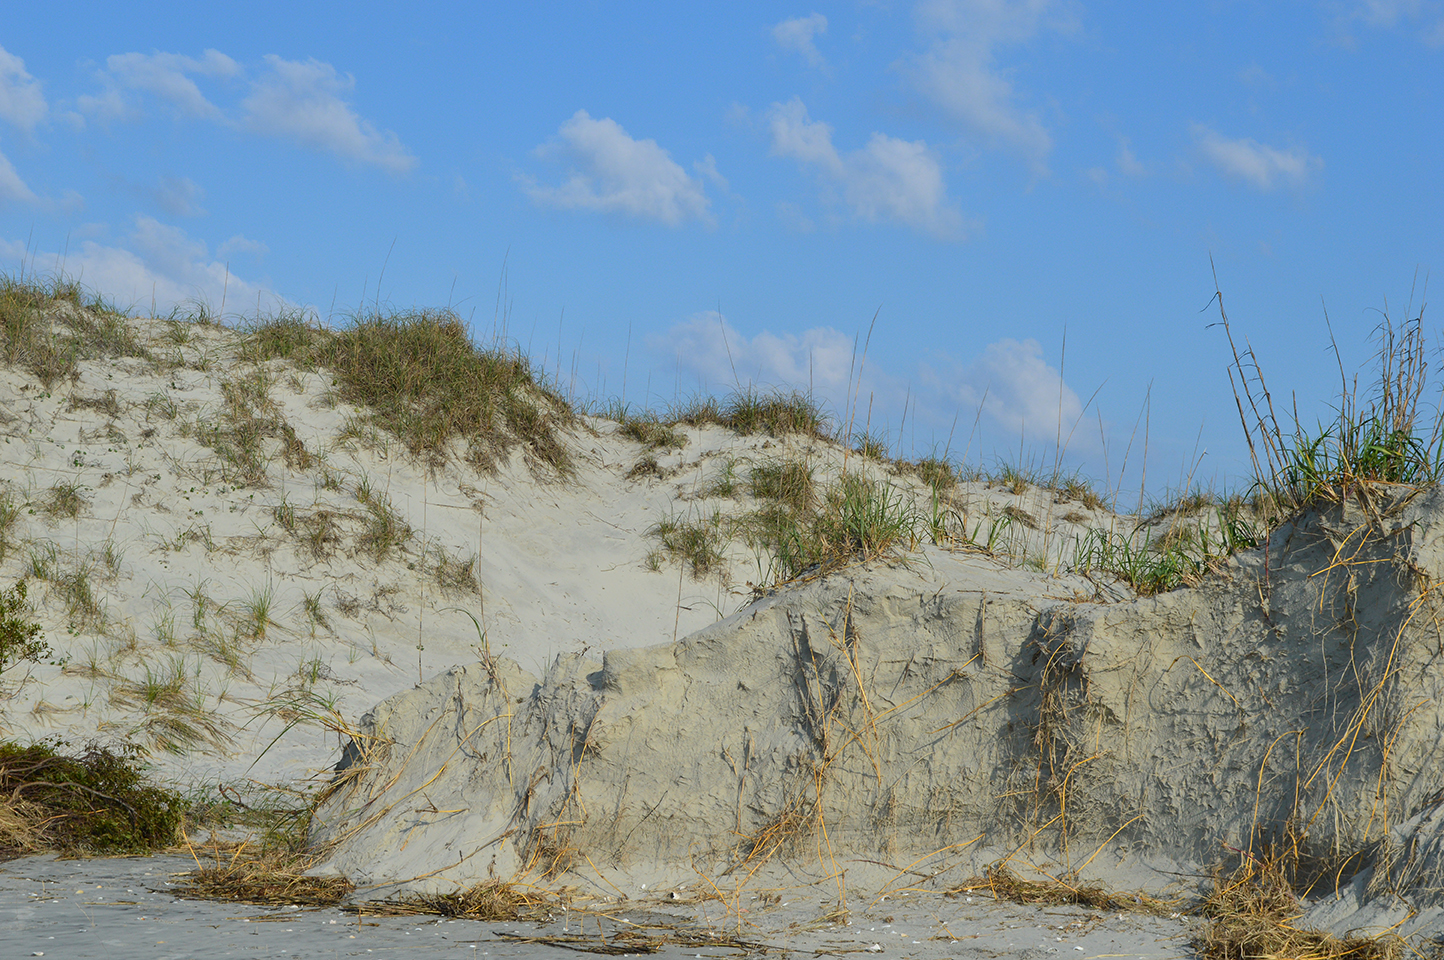 I can't believe how much of the dunes washed away